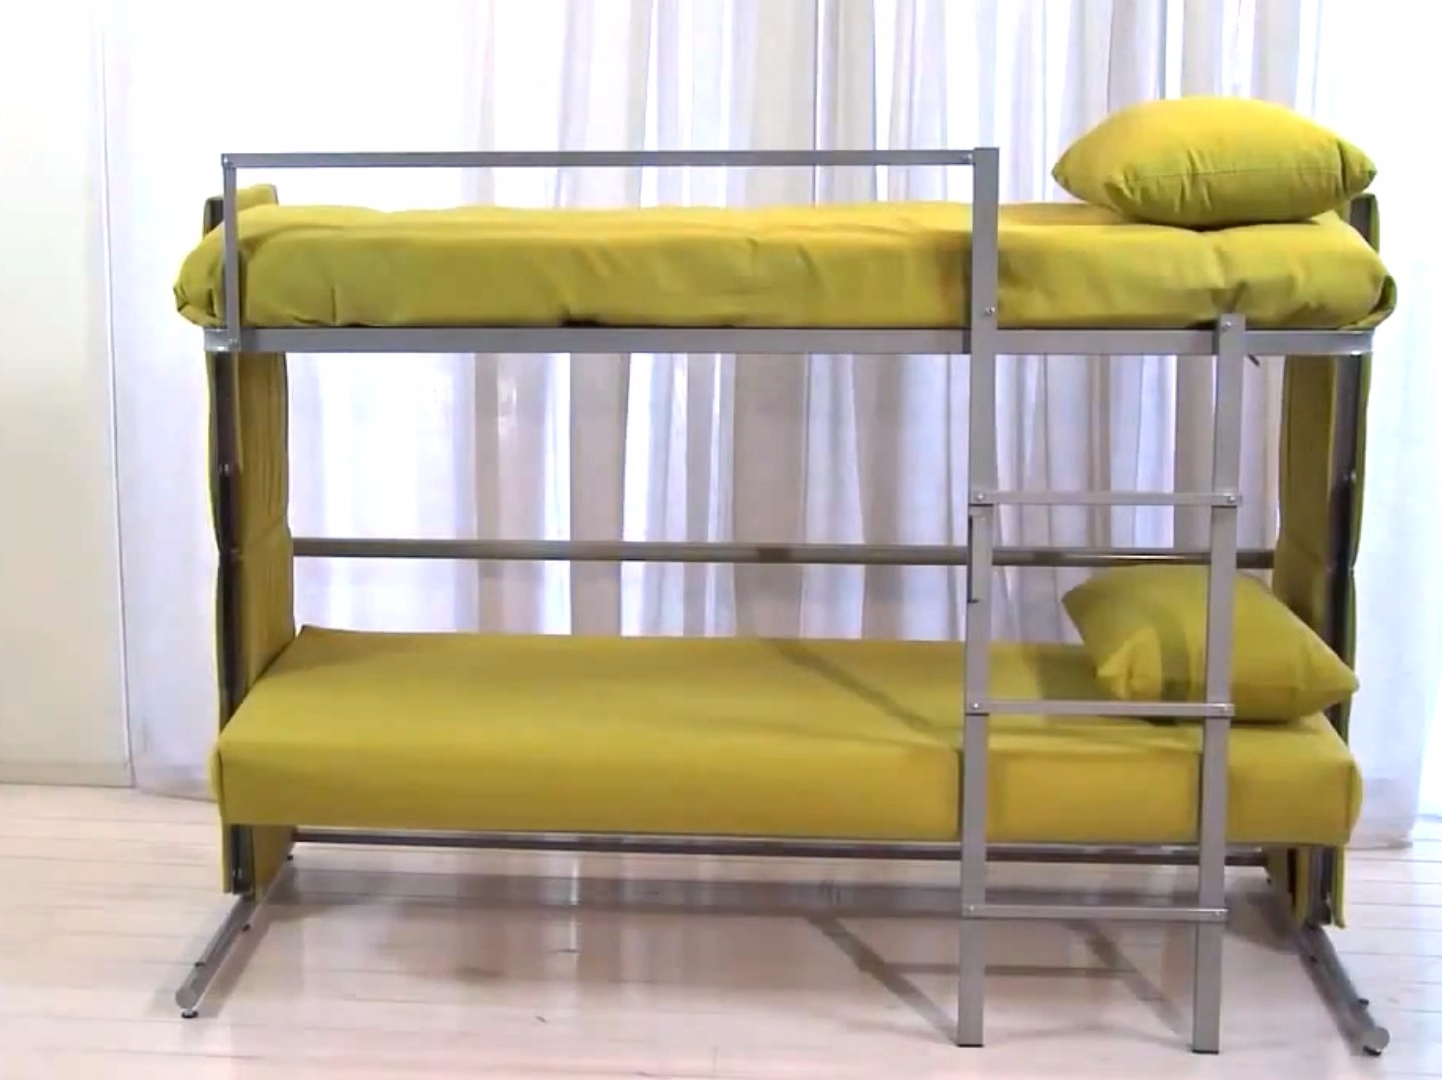 Most Up To Date Sofa Folds Out Into A Bunk Bed – Business Insider In Sofa Bunk Beds (View 9 of 15)